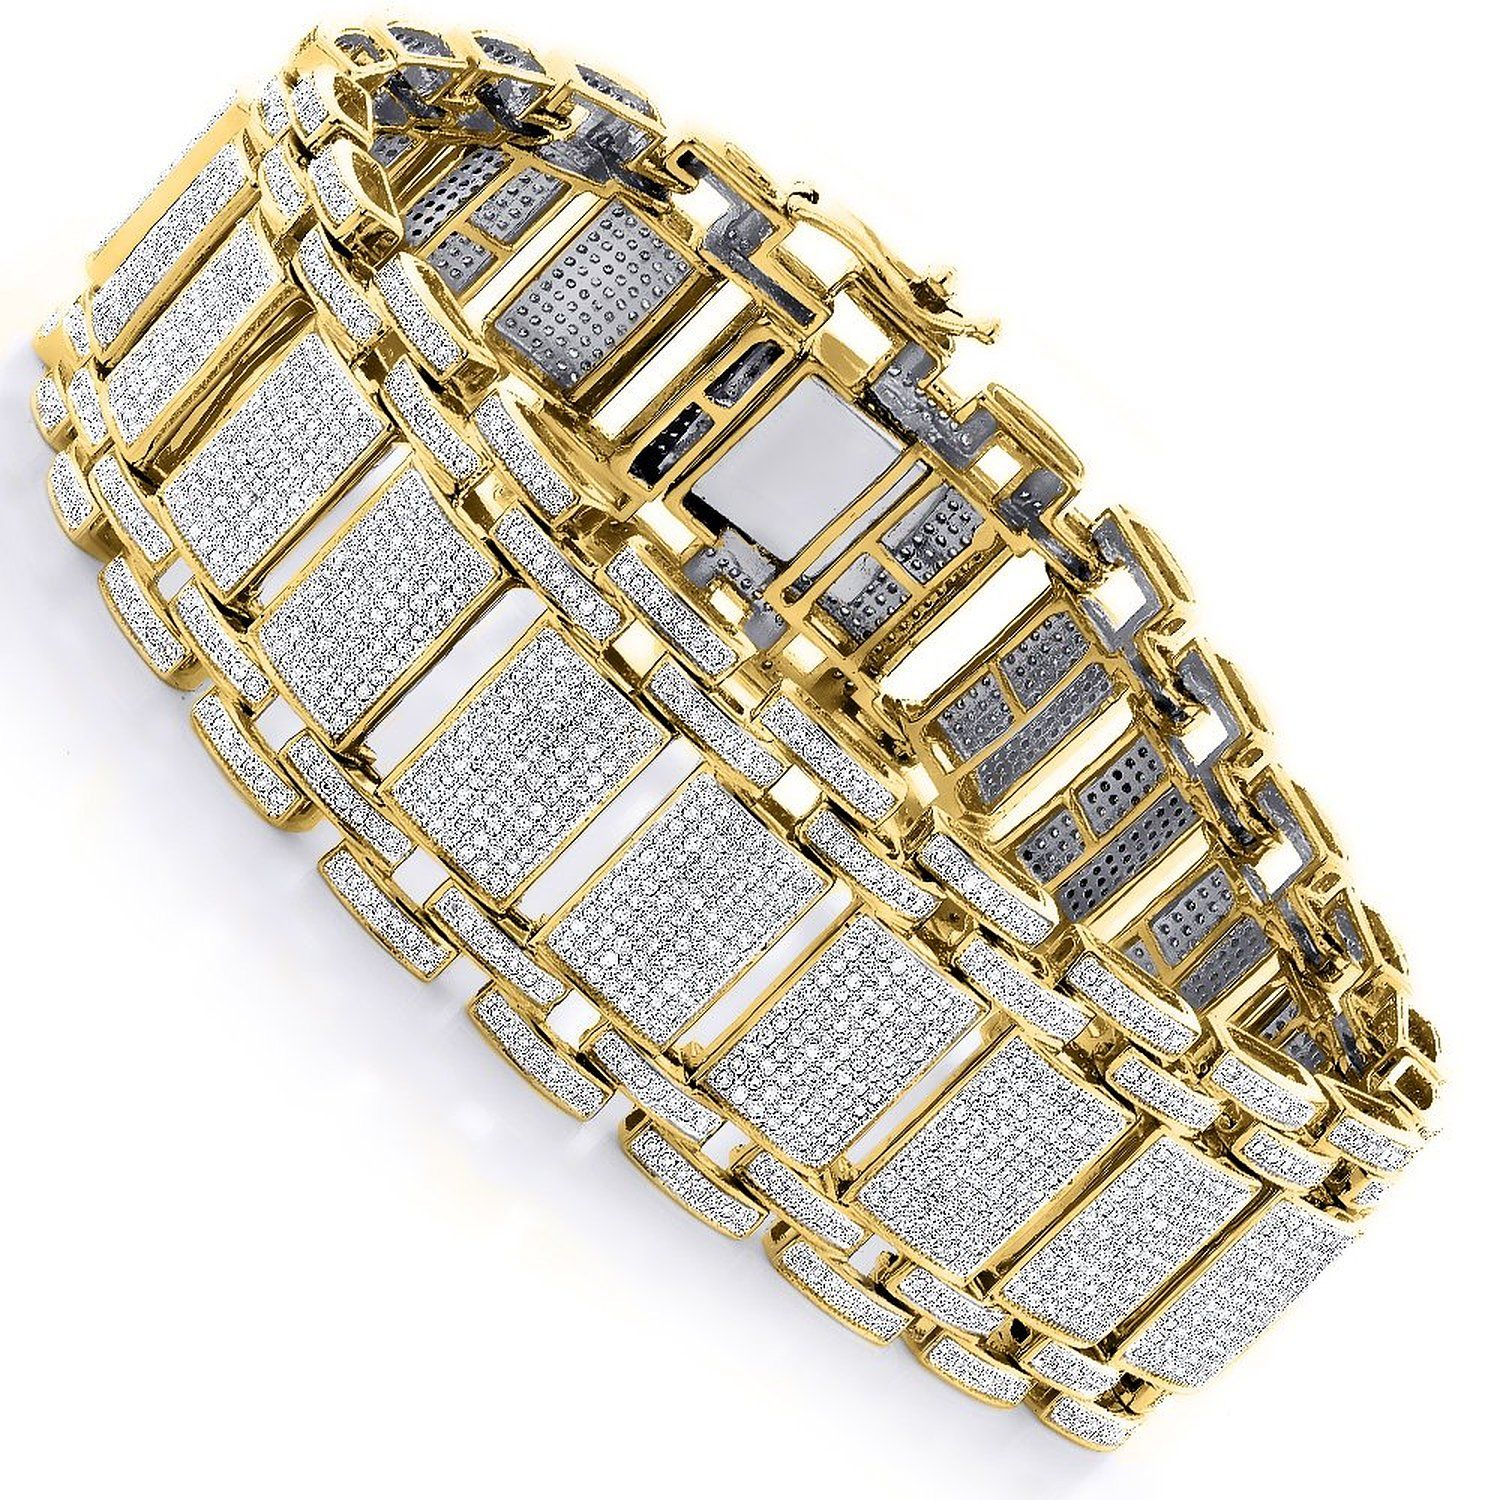 watch amazing necklace by row bracelet shine diamond mens jewelryfresh youtube lab chains